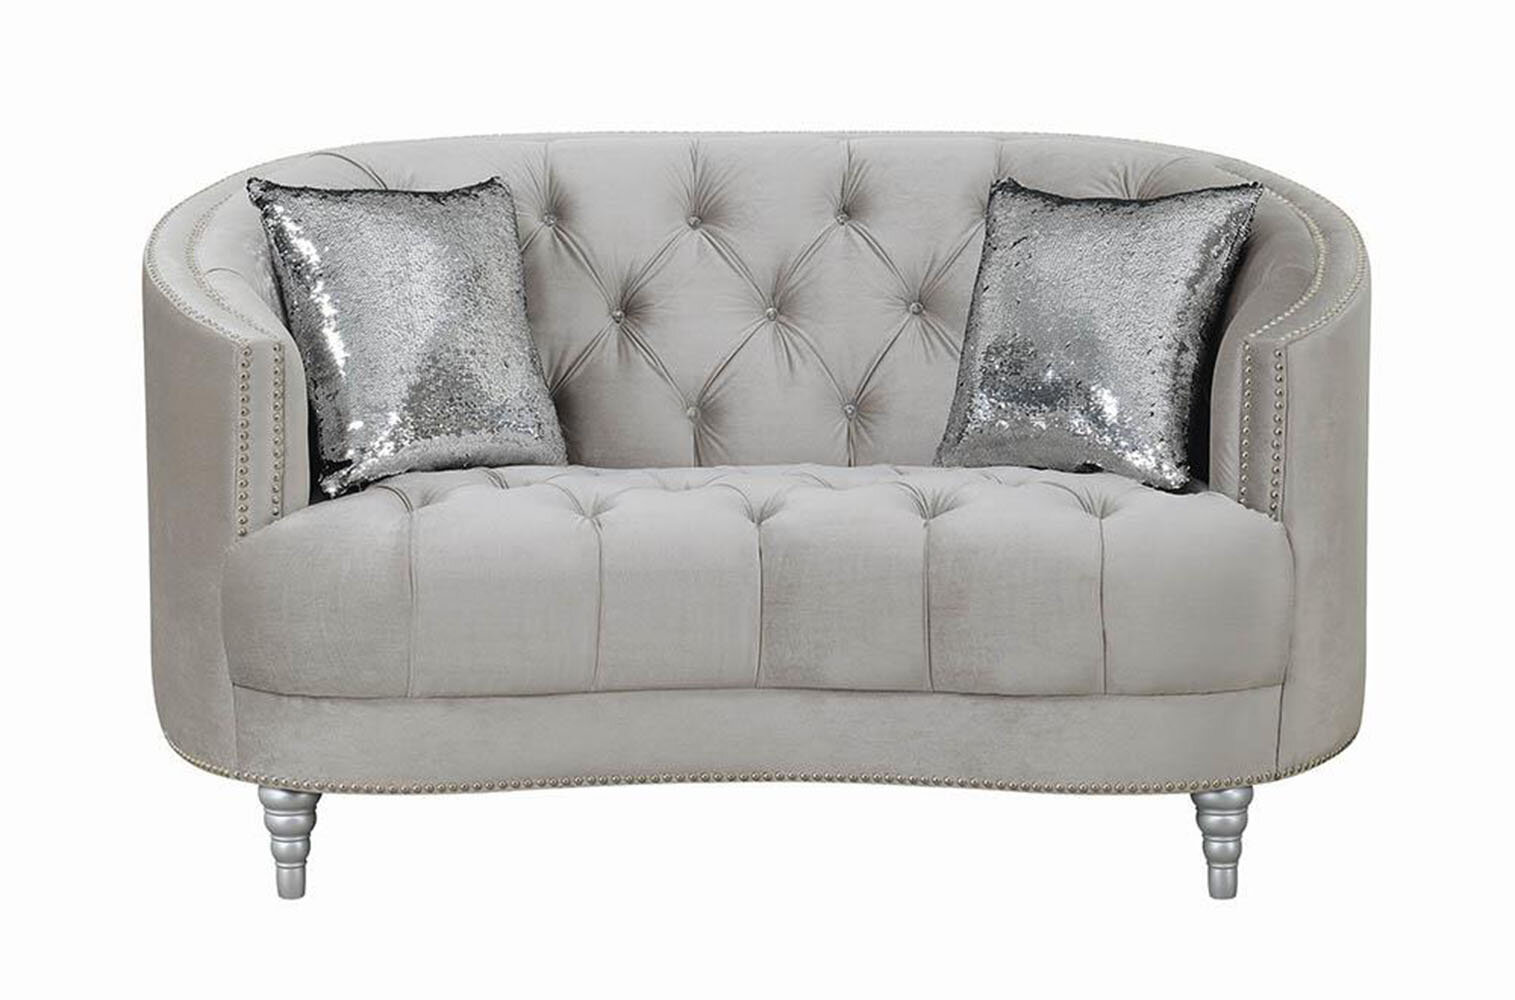 Curved Grey Loveseats You Ll Love In 2021 Wayfair